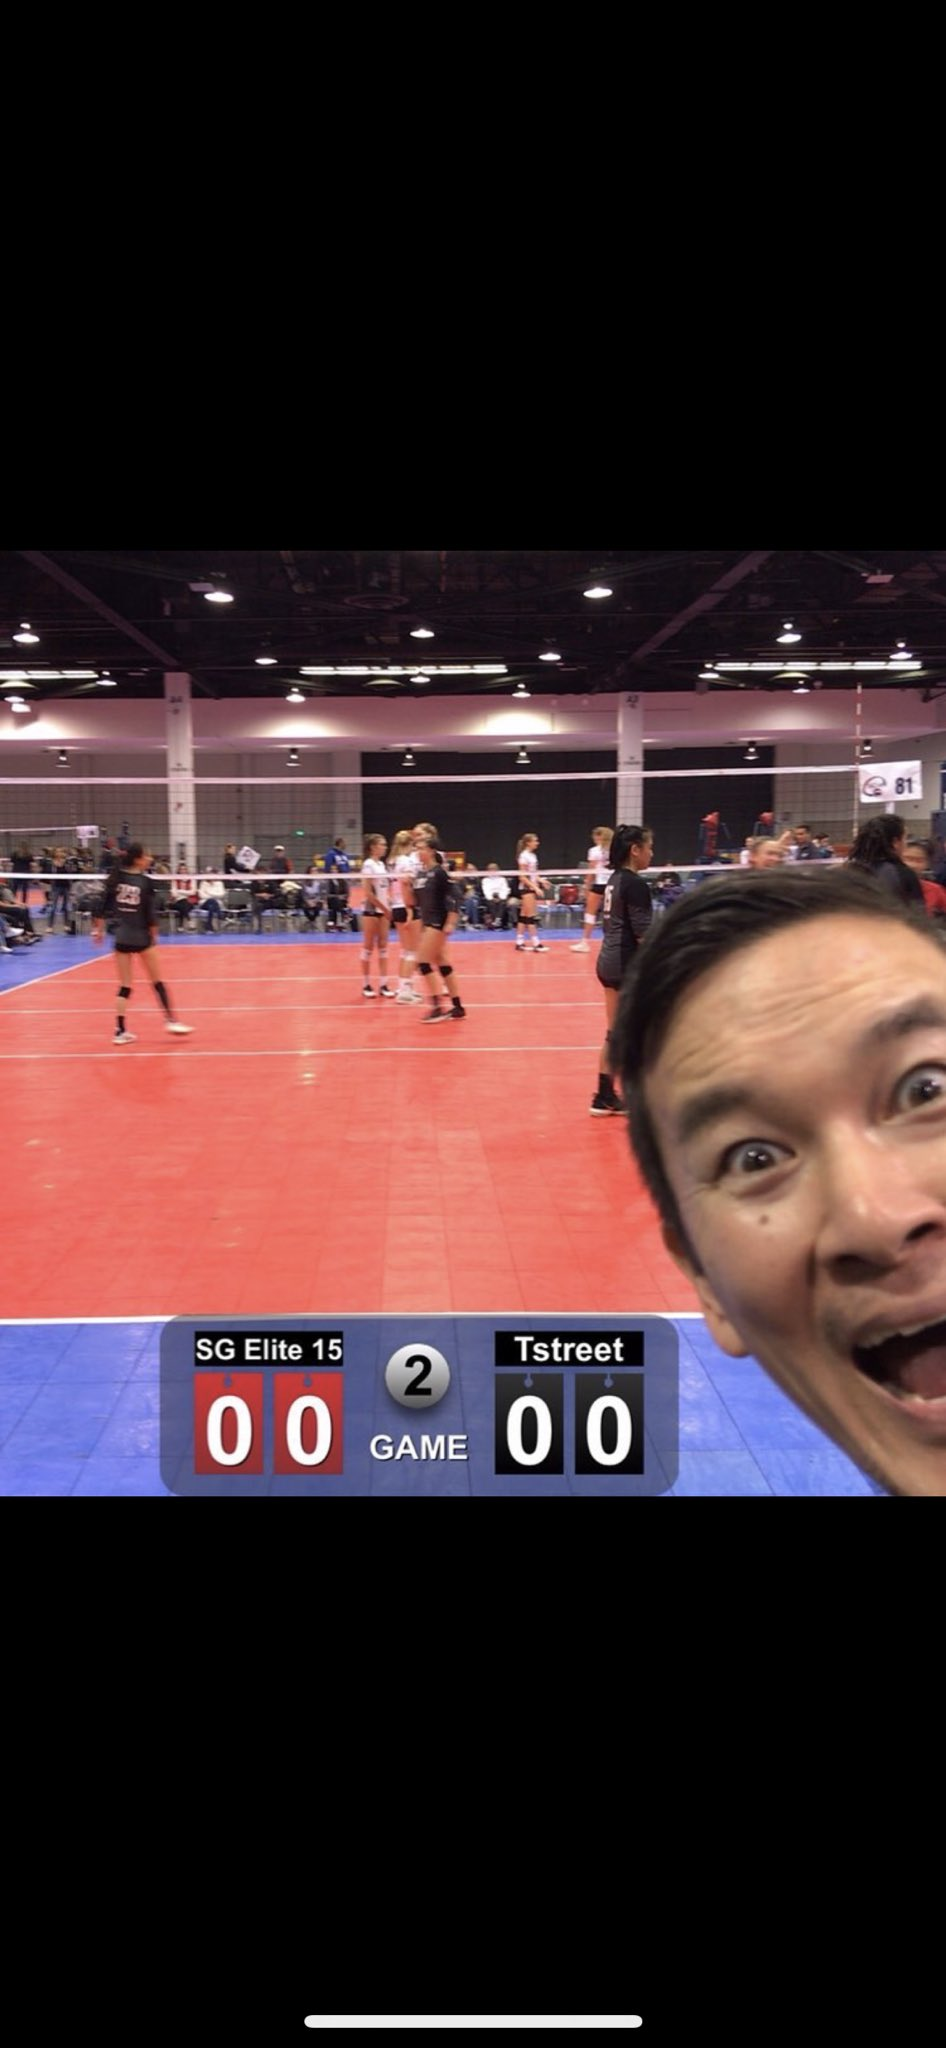 Sg Elite Vbc On Twitter Surprise It S Our Director Kenji Parents Be On The Look Out For Guest Appearances In Your Videos This Year